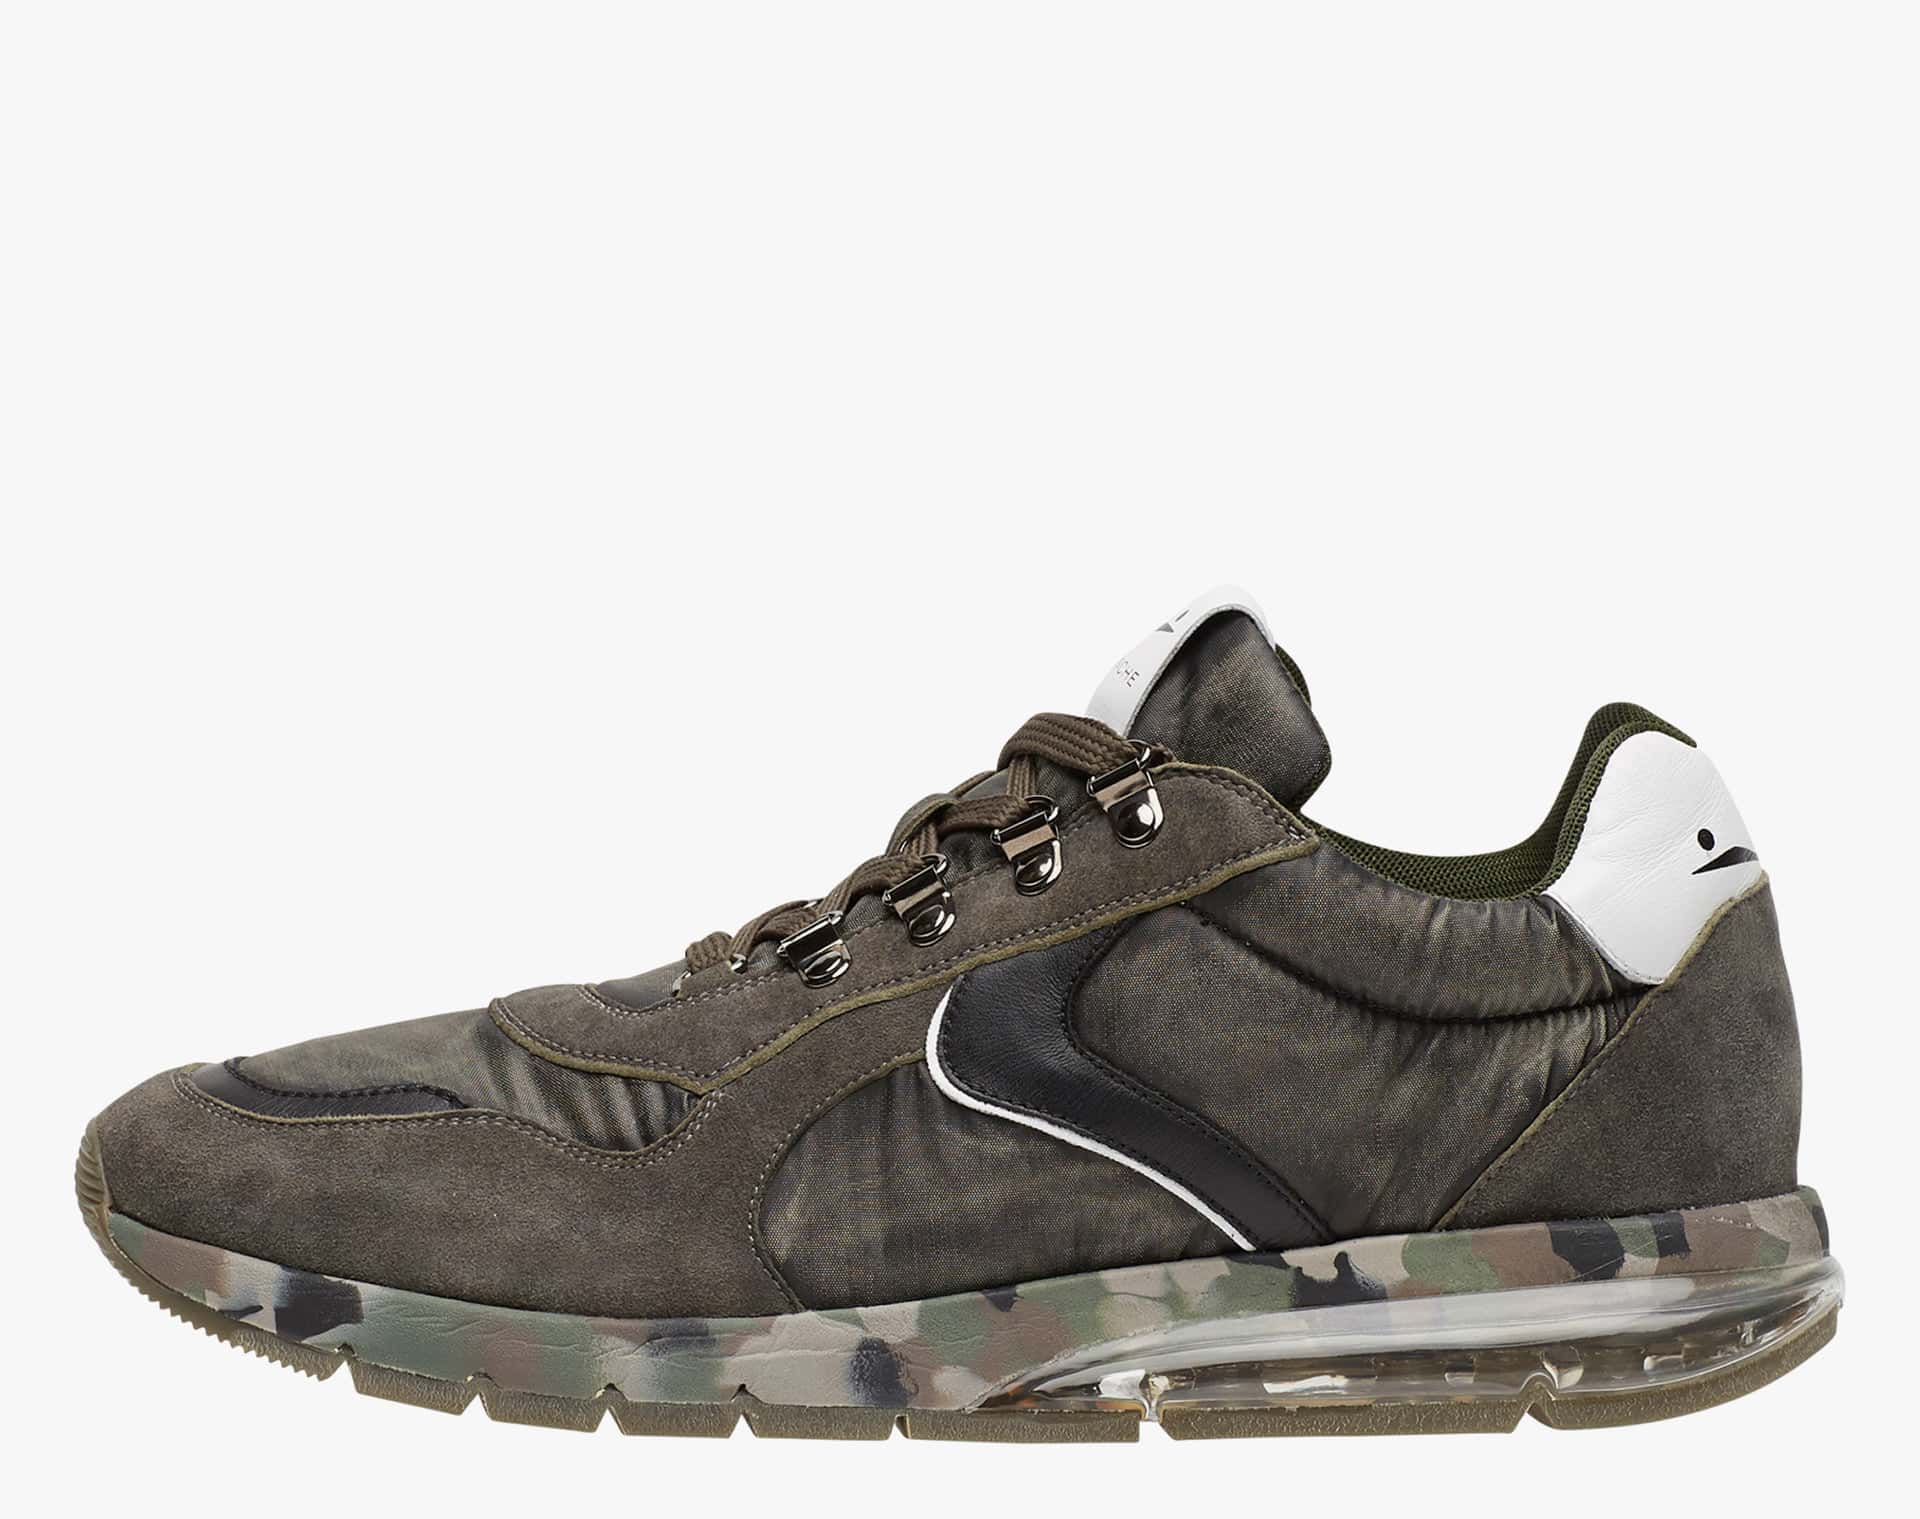 NEW LENNY HOOK - Sneakers in pelle e nylon - Militare